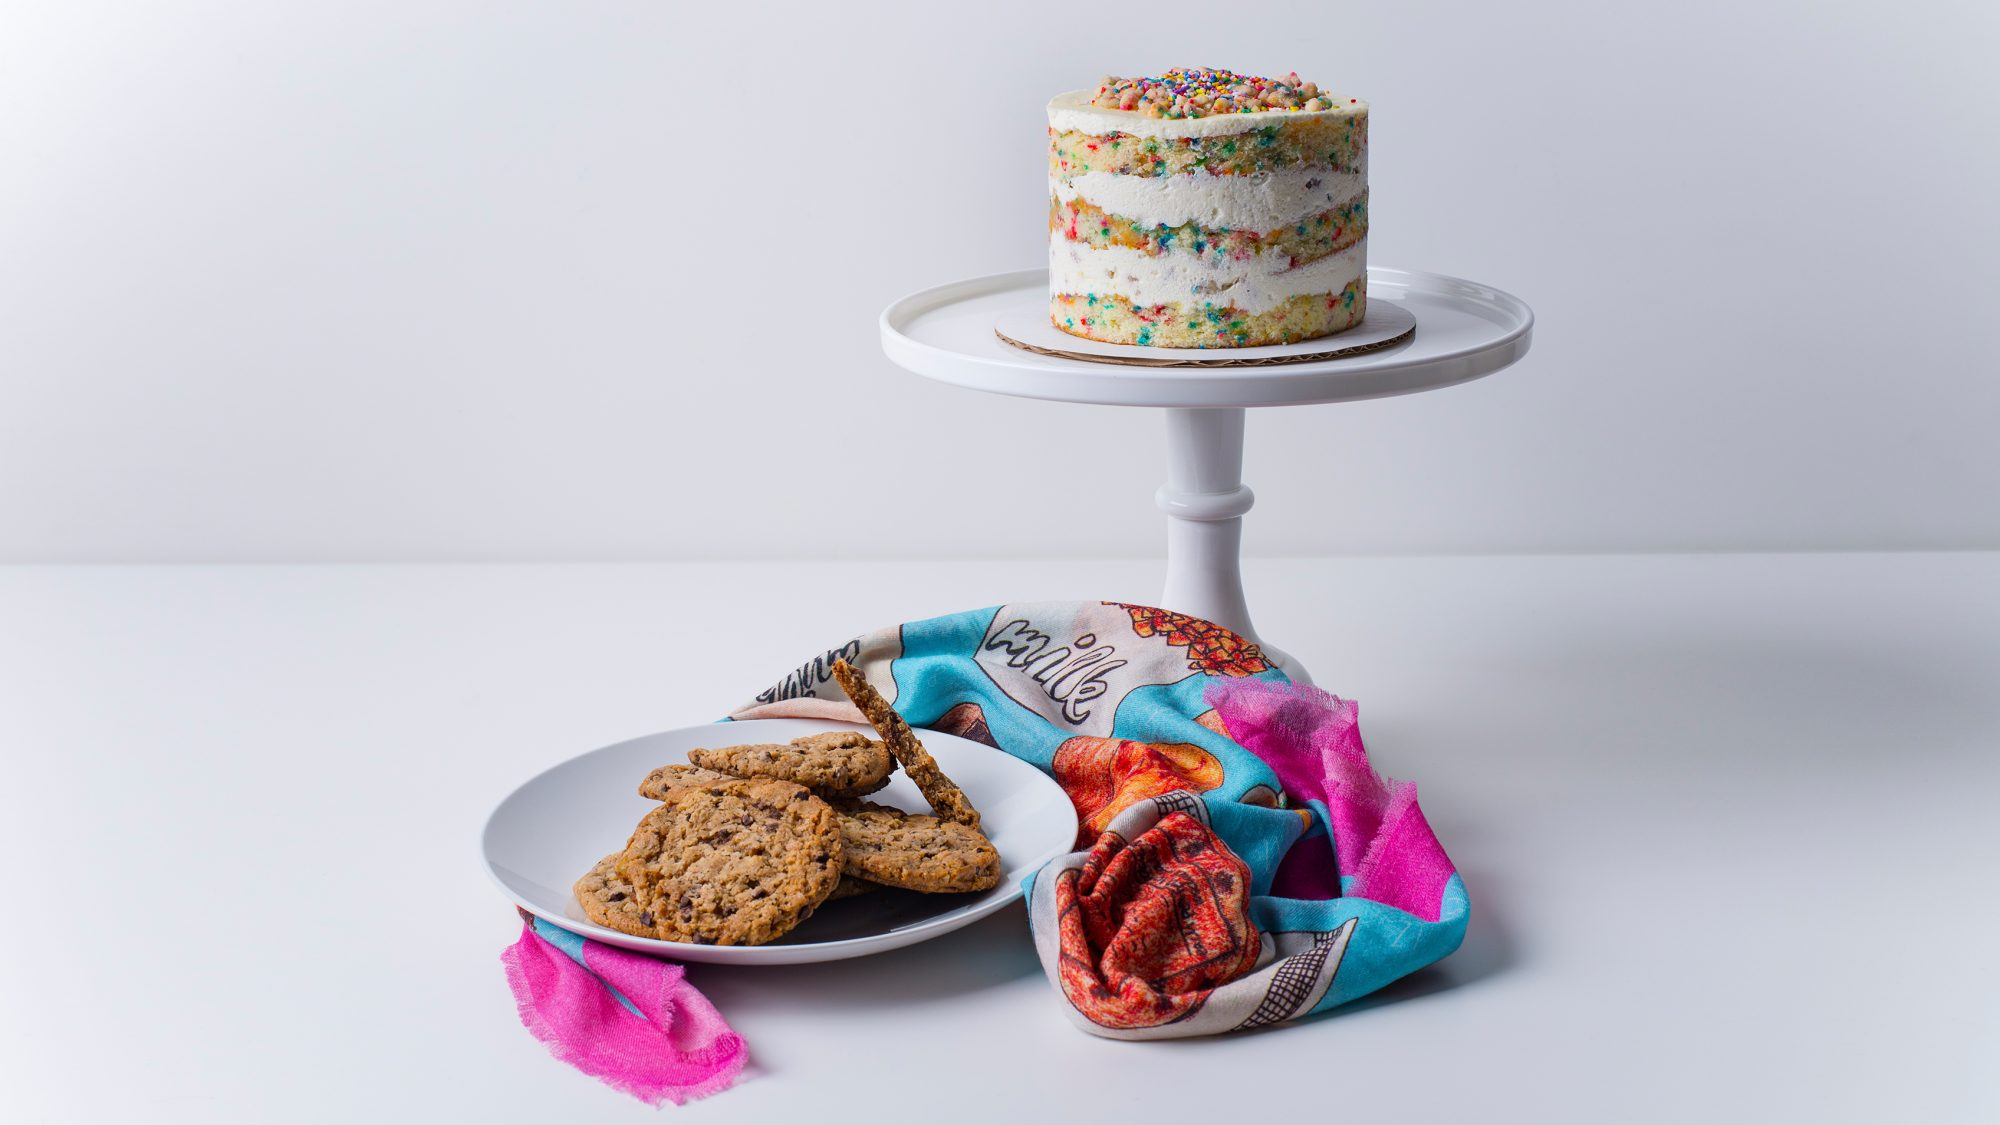 MILKBAR1215-FT-scarf-and-cake.jpg